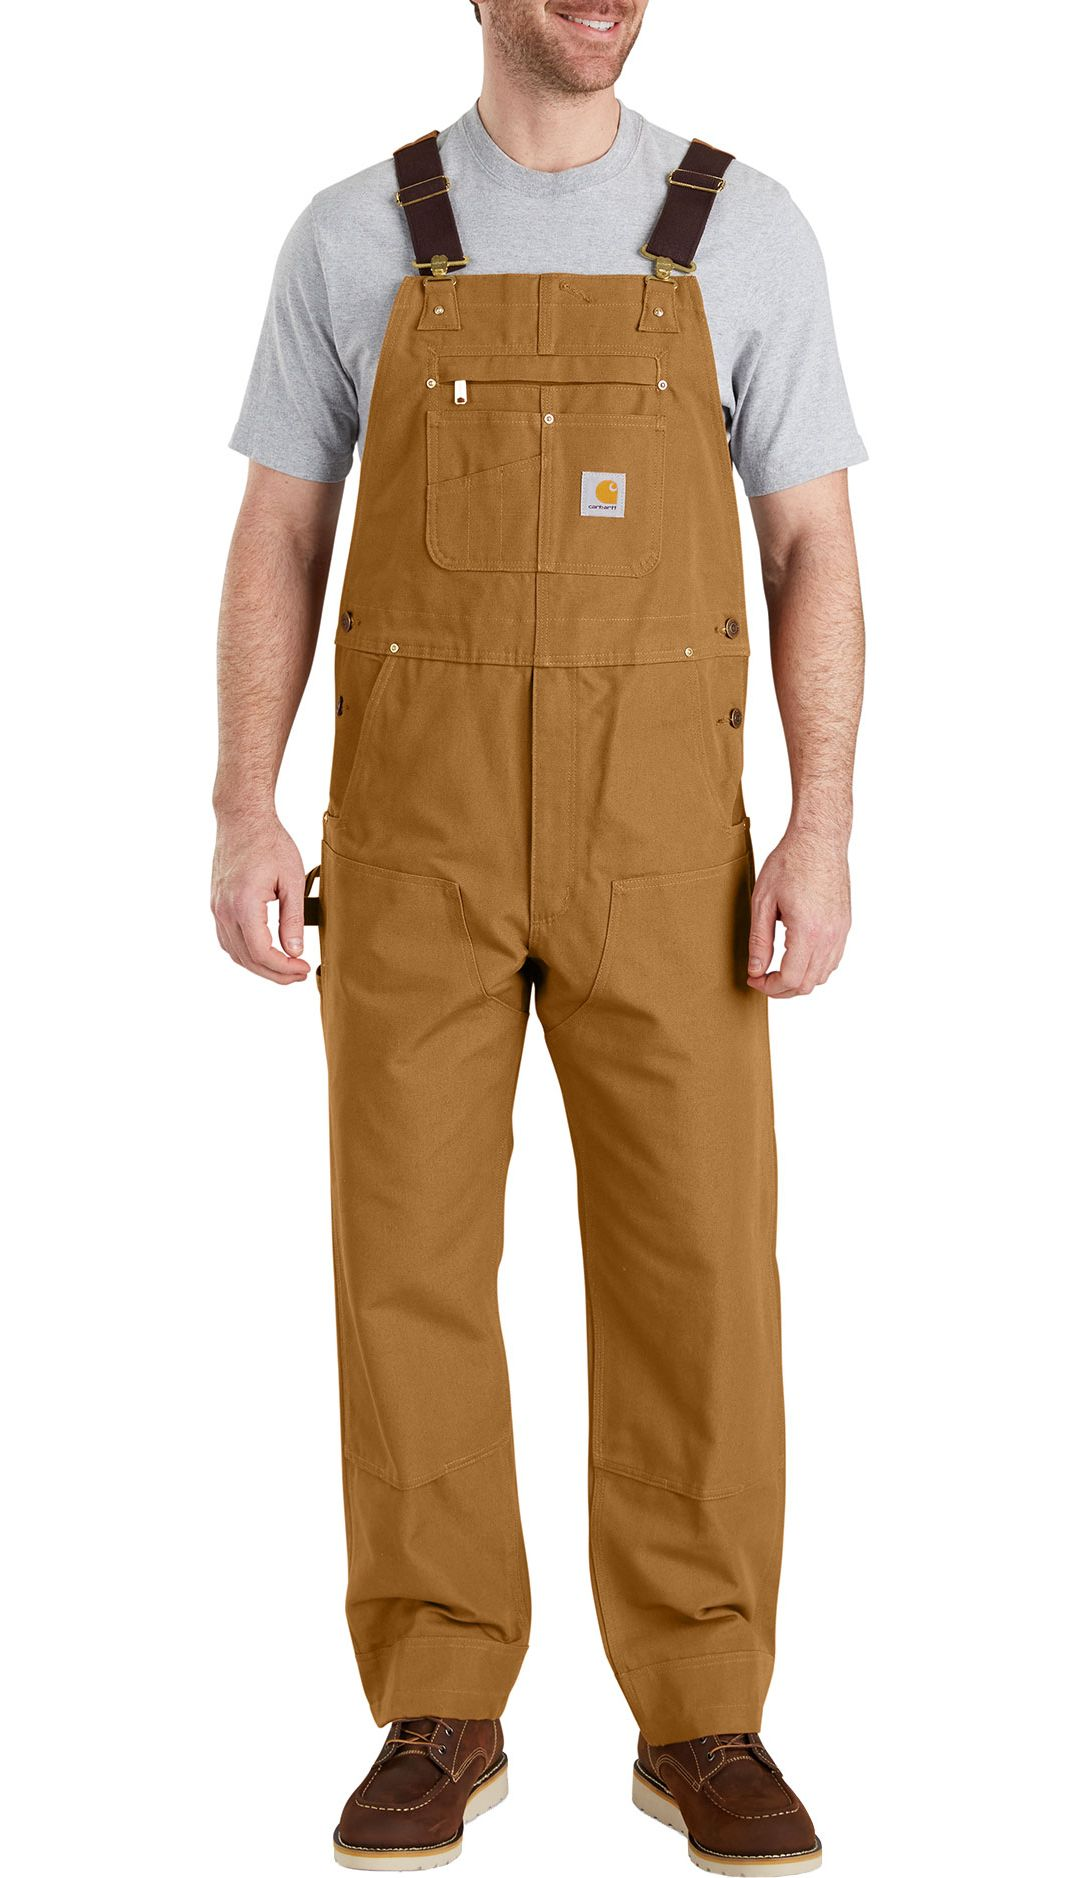 bc169f7fc9a Carhartt Men's Duck Bib Overalls | DICK'S Sporting Goods